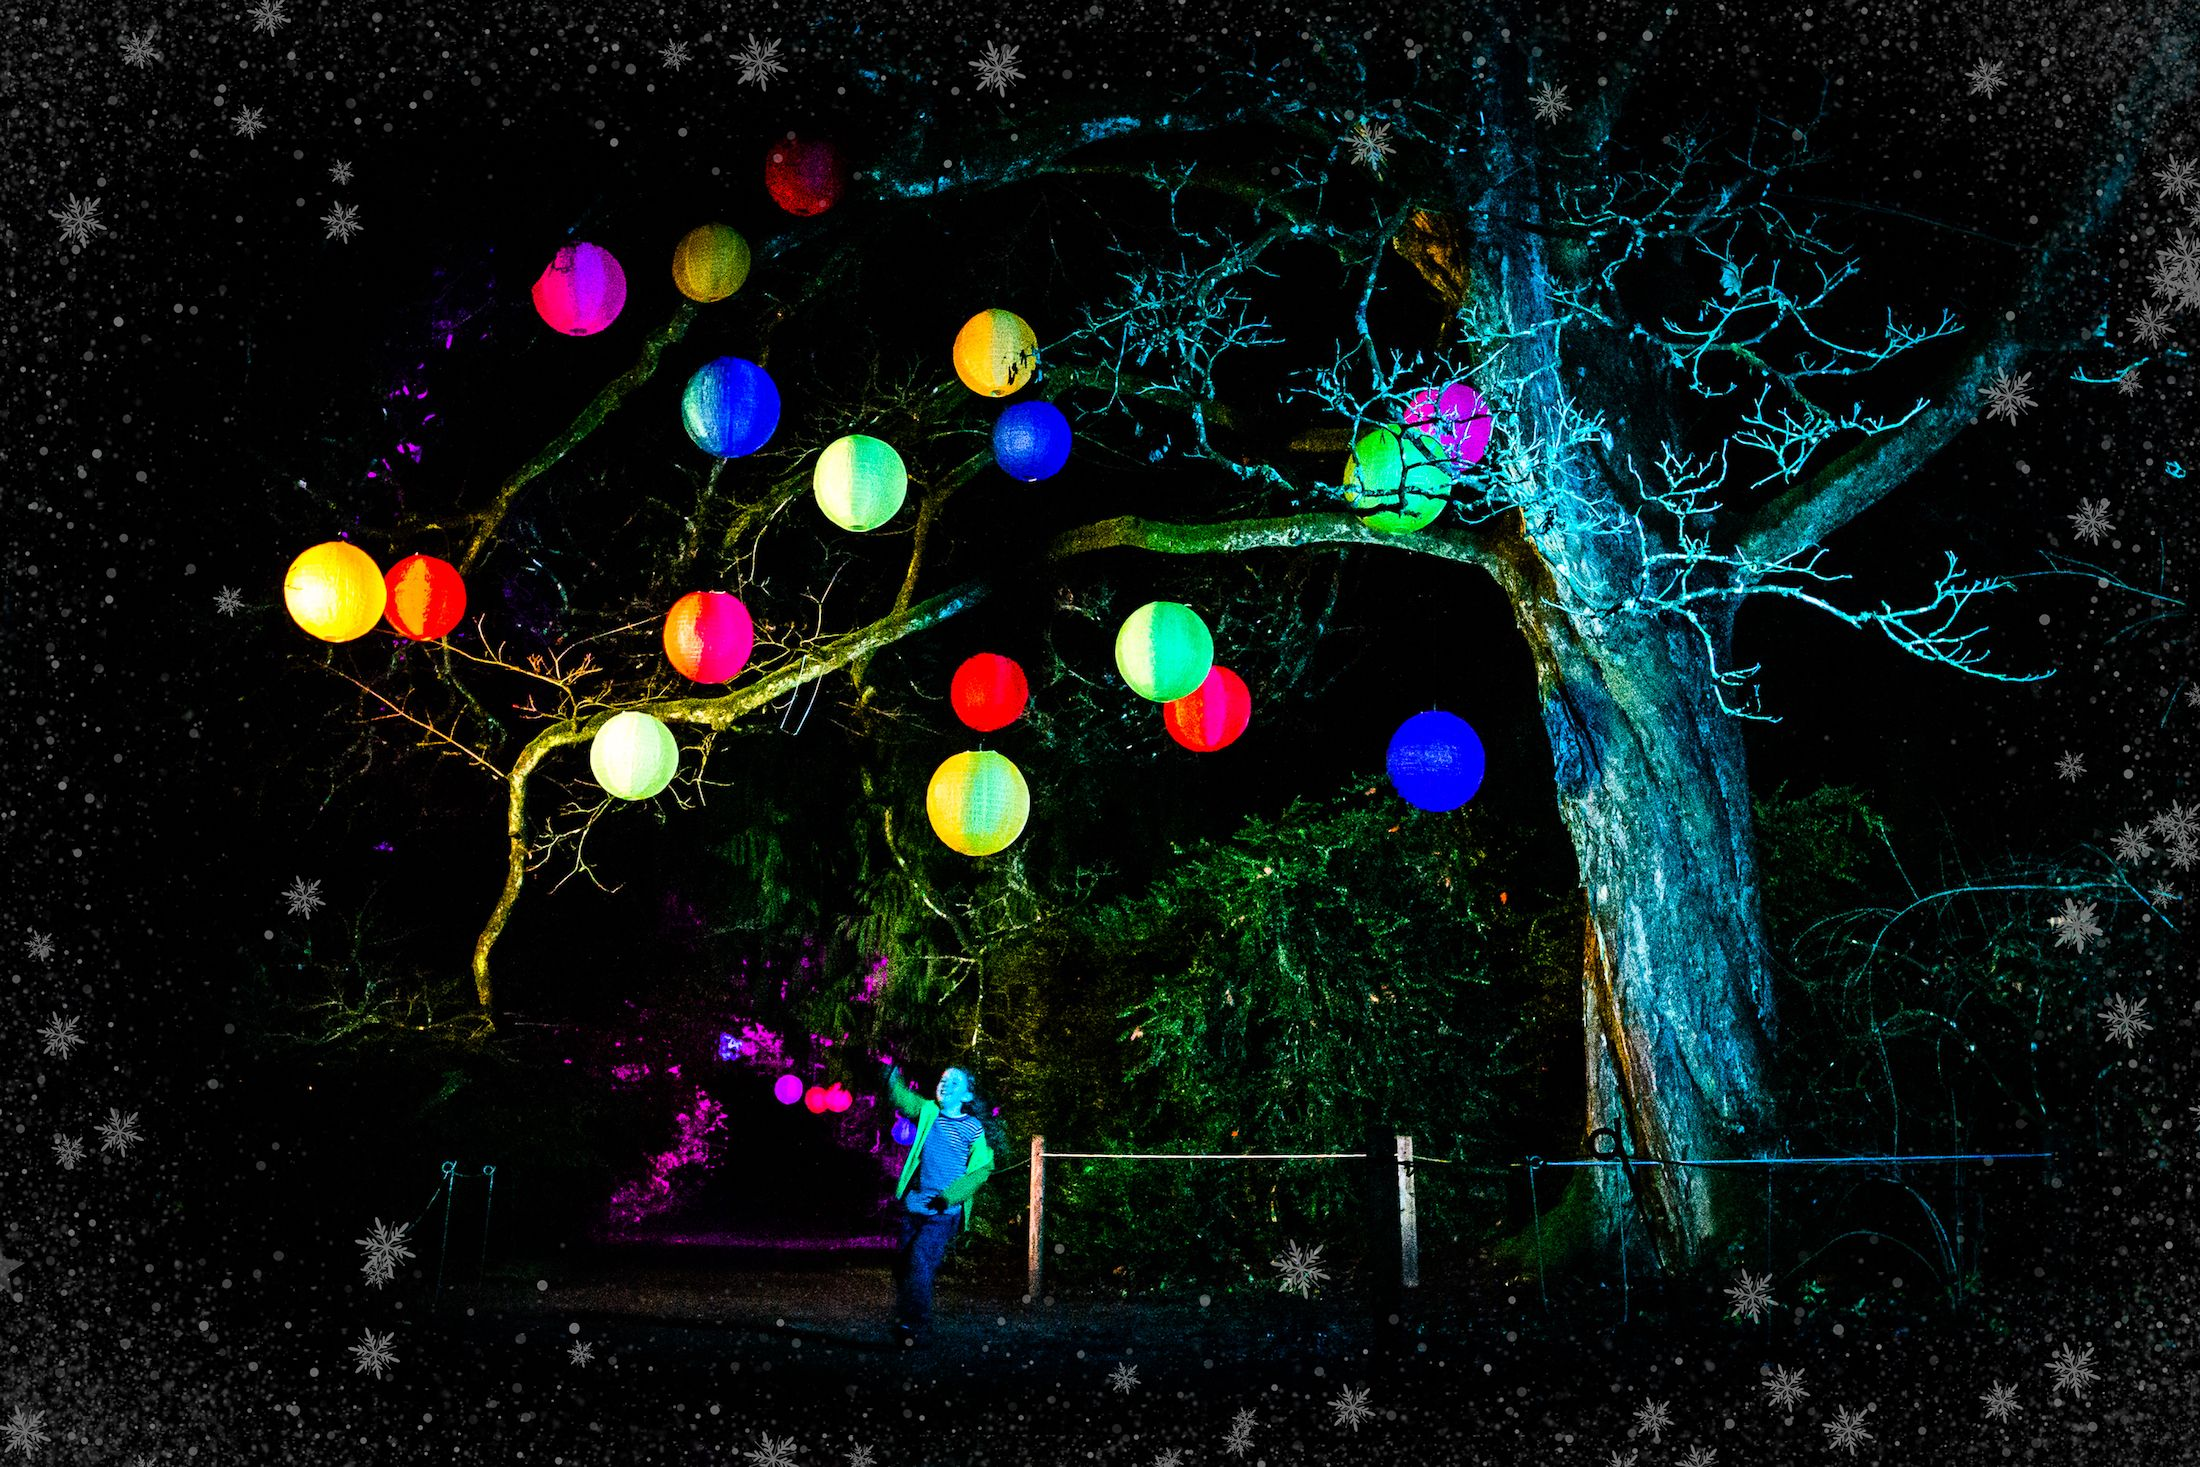 Enchanted Christmas Village 2020 Enchanted Christmas Returns to Westonbirt Arboretum For 2019